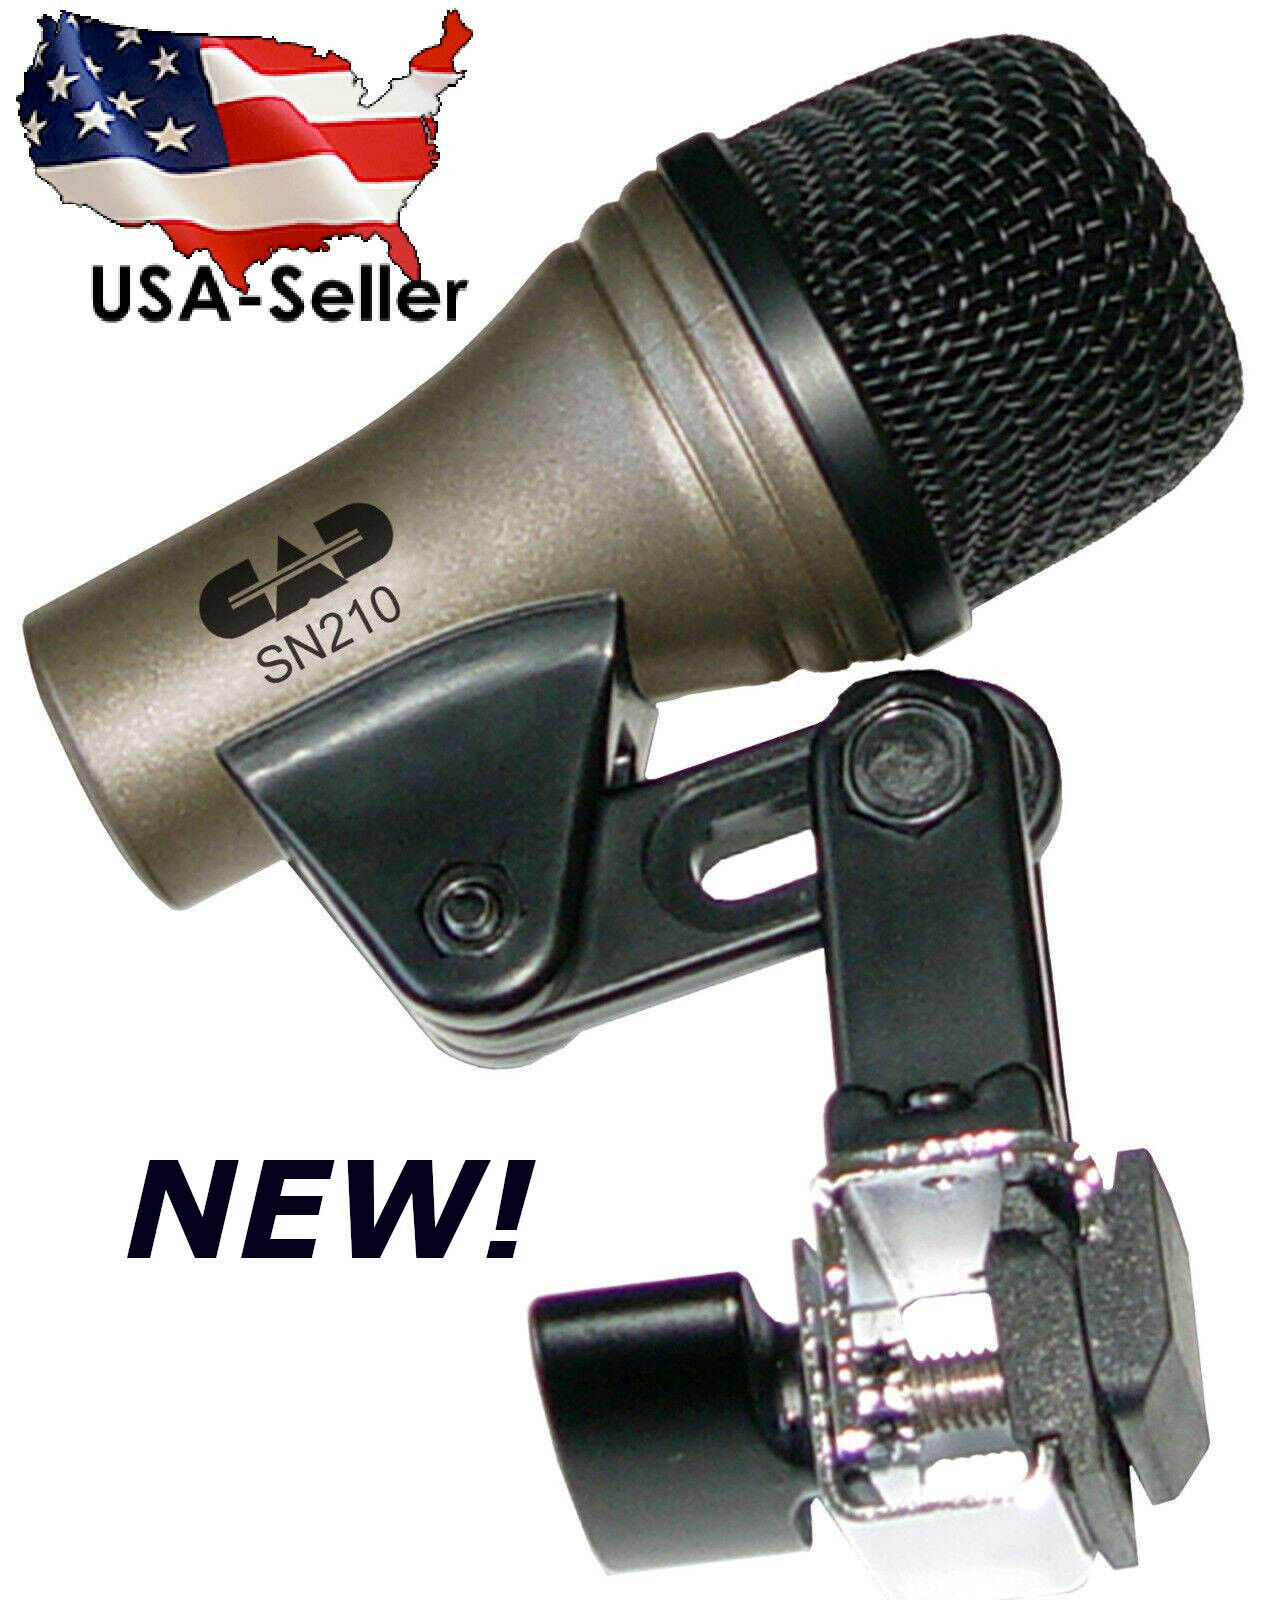 CAD Snare Drum Mic Microphone+rim clip on Mount For Studio+Live Recordings SN210